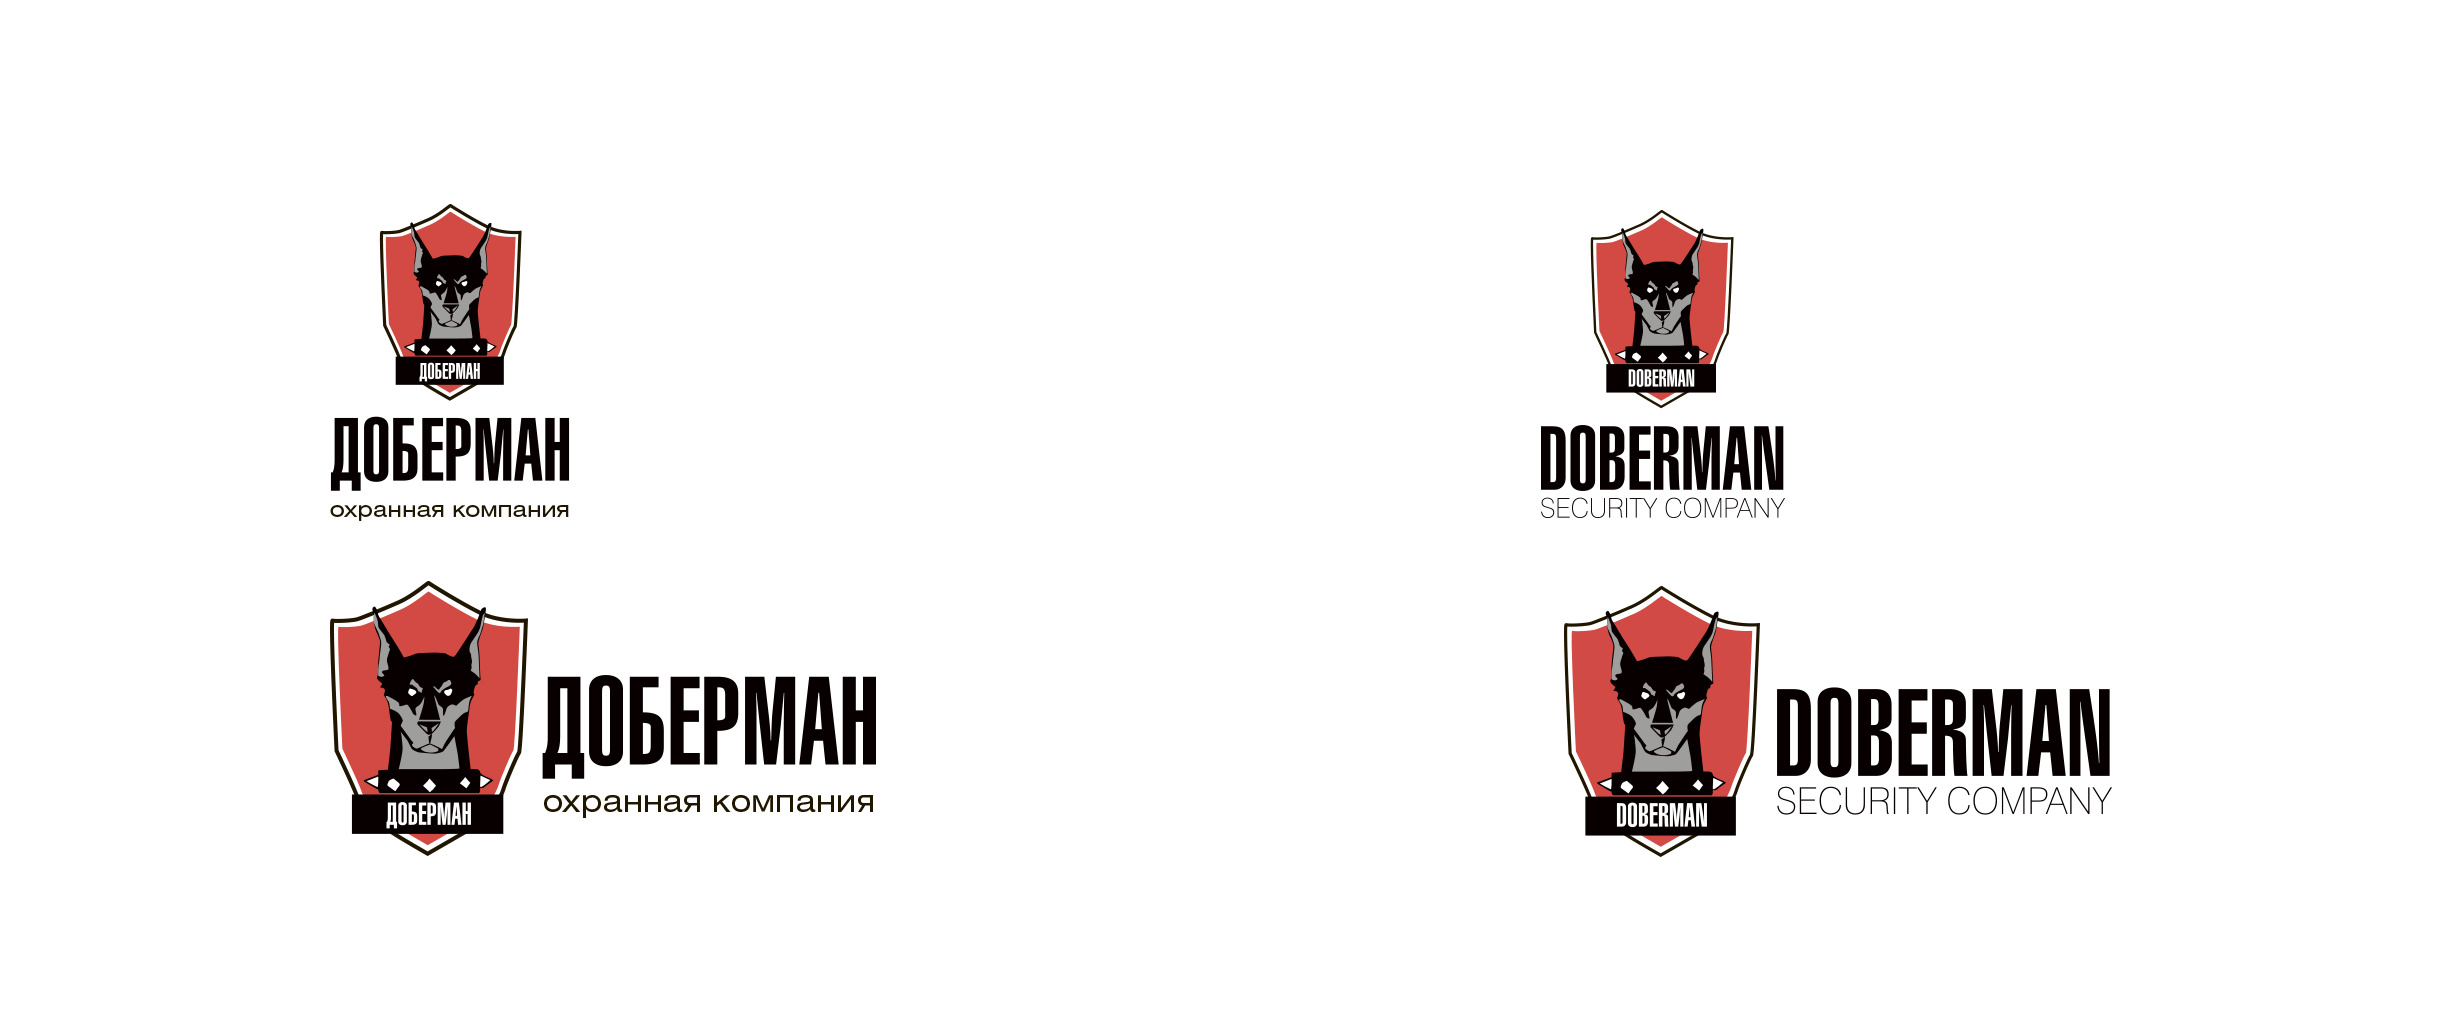 Strategies to promote the site Doberman new logo